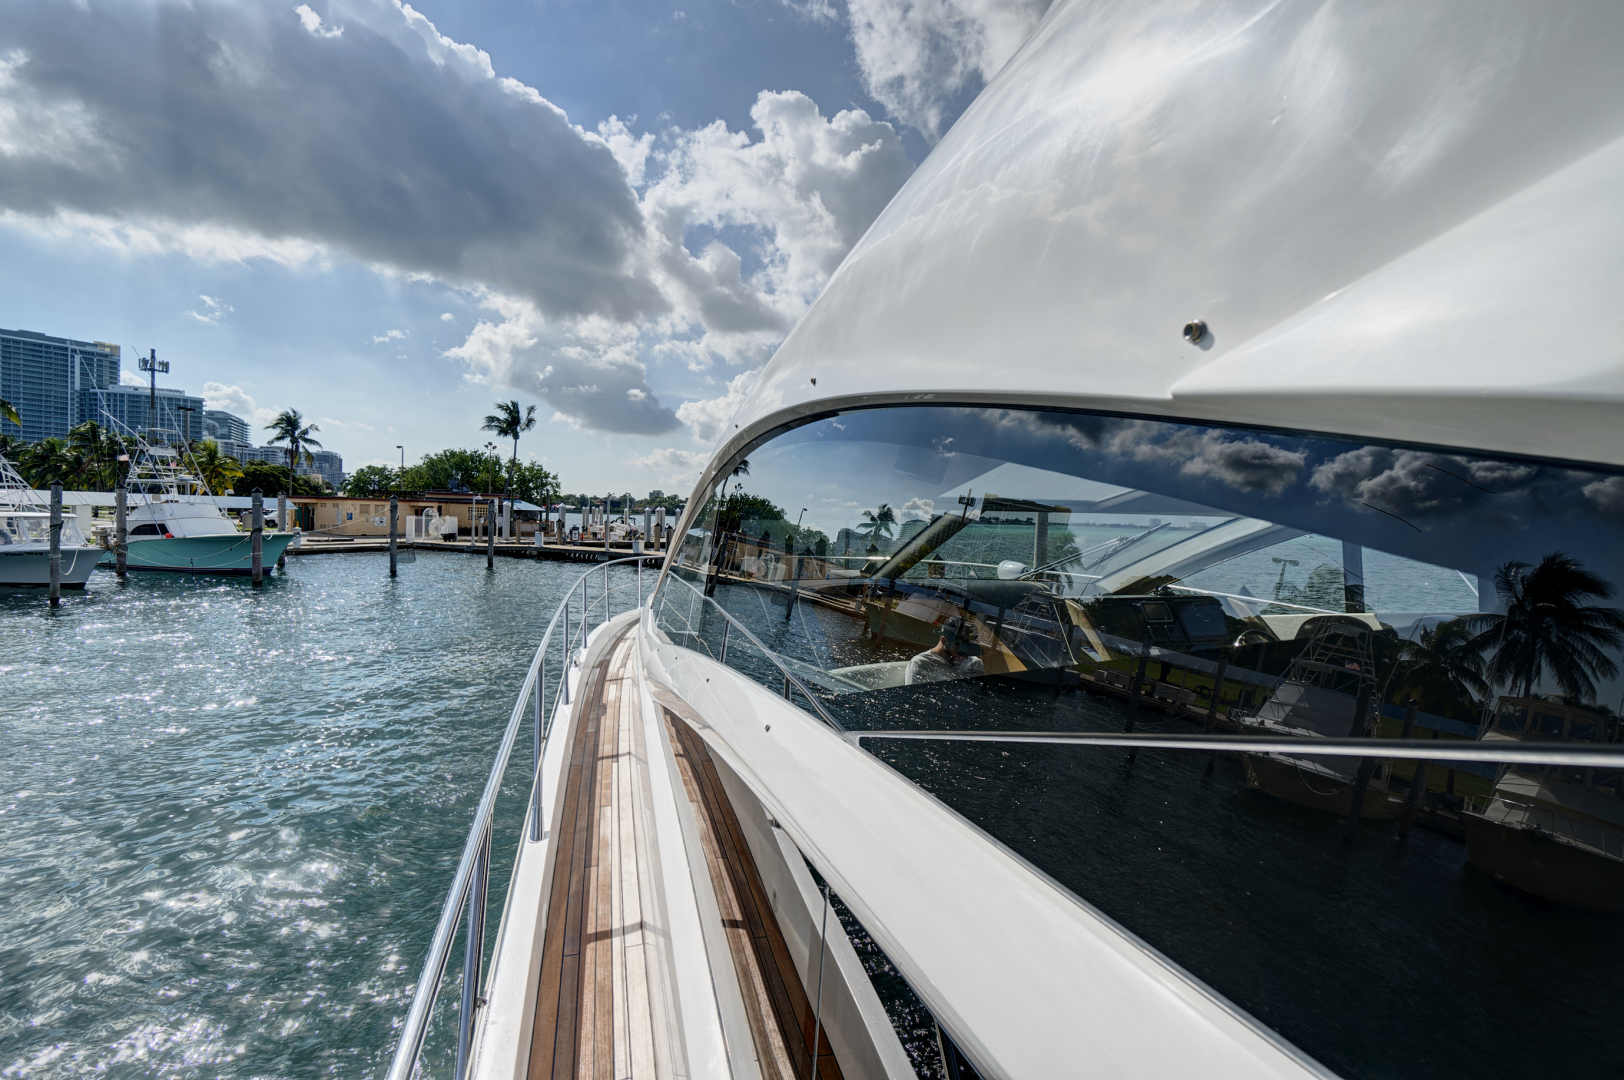 Sunseeker-68 Sport Yacht 2014-New Page Miami Beach-Florida-United States-1581184 | Thumbnail